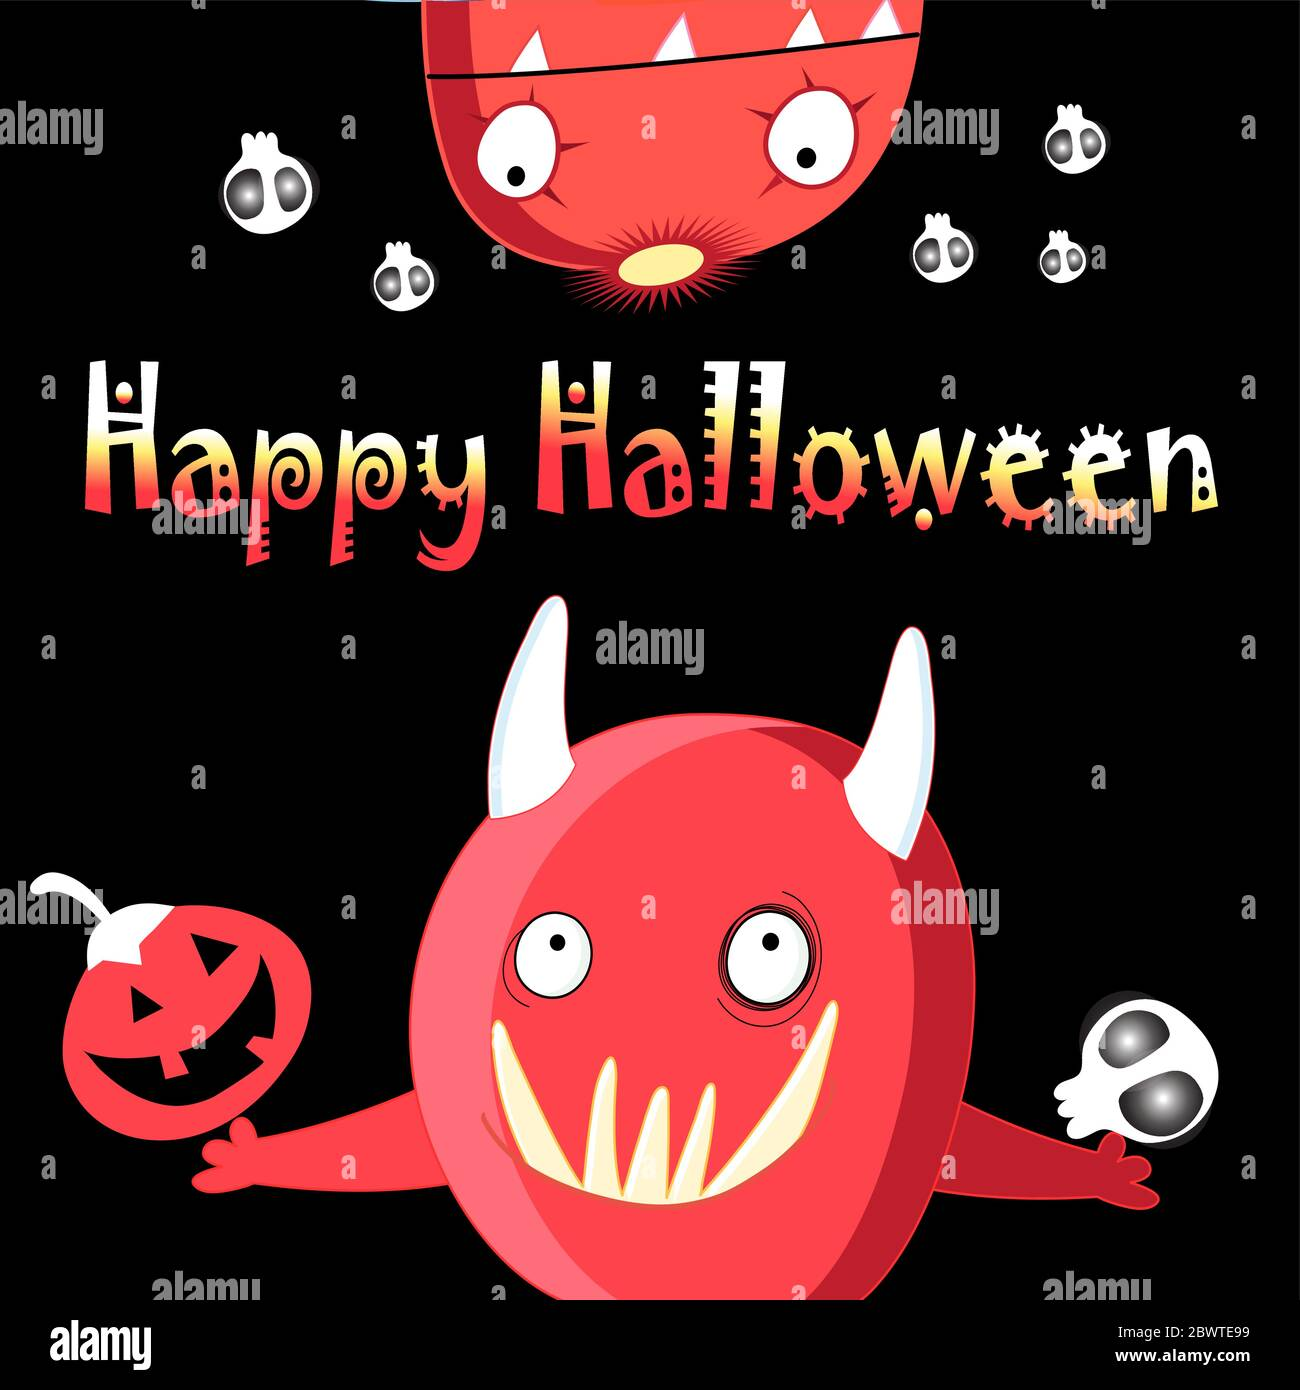 Bright Vector Illustration Of Monsters Funny For Halloween Stock Vector Image Art Alamy